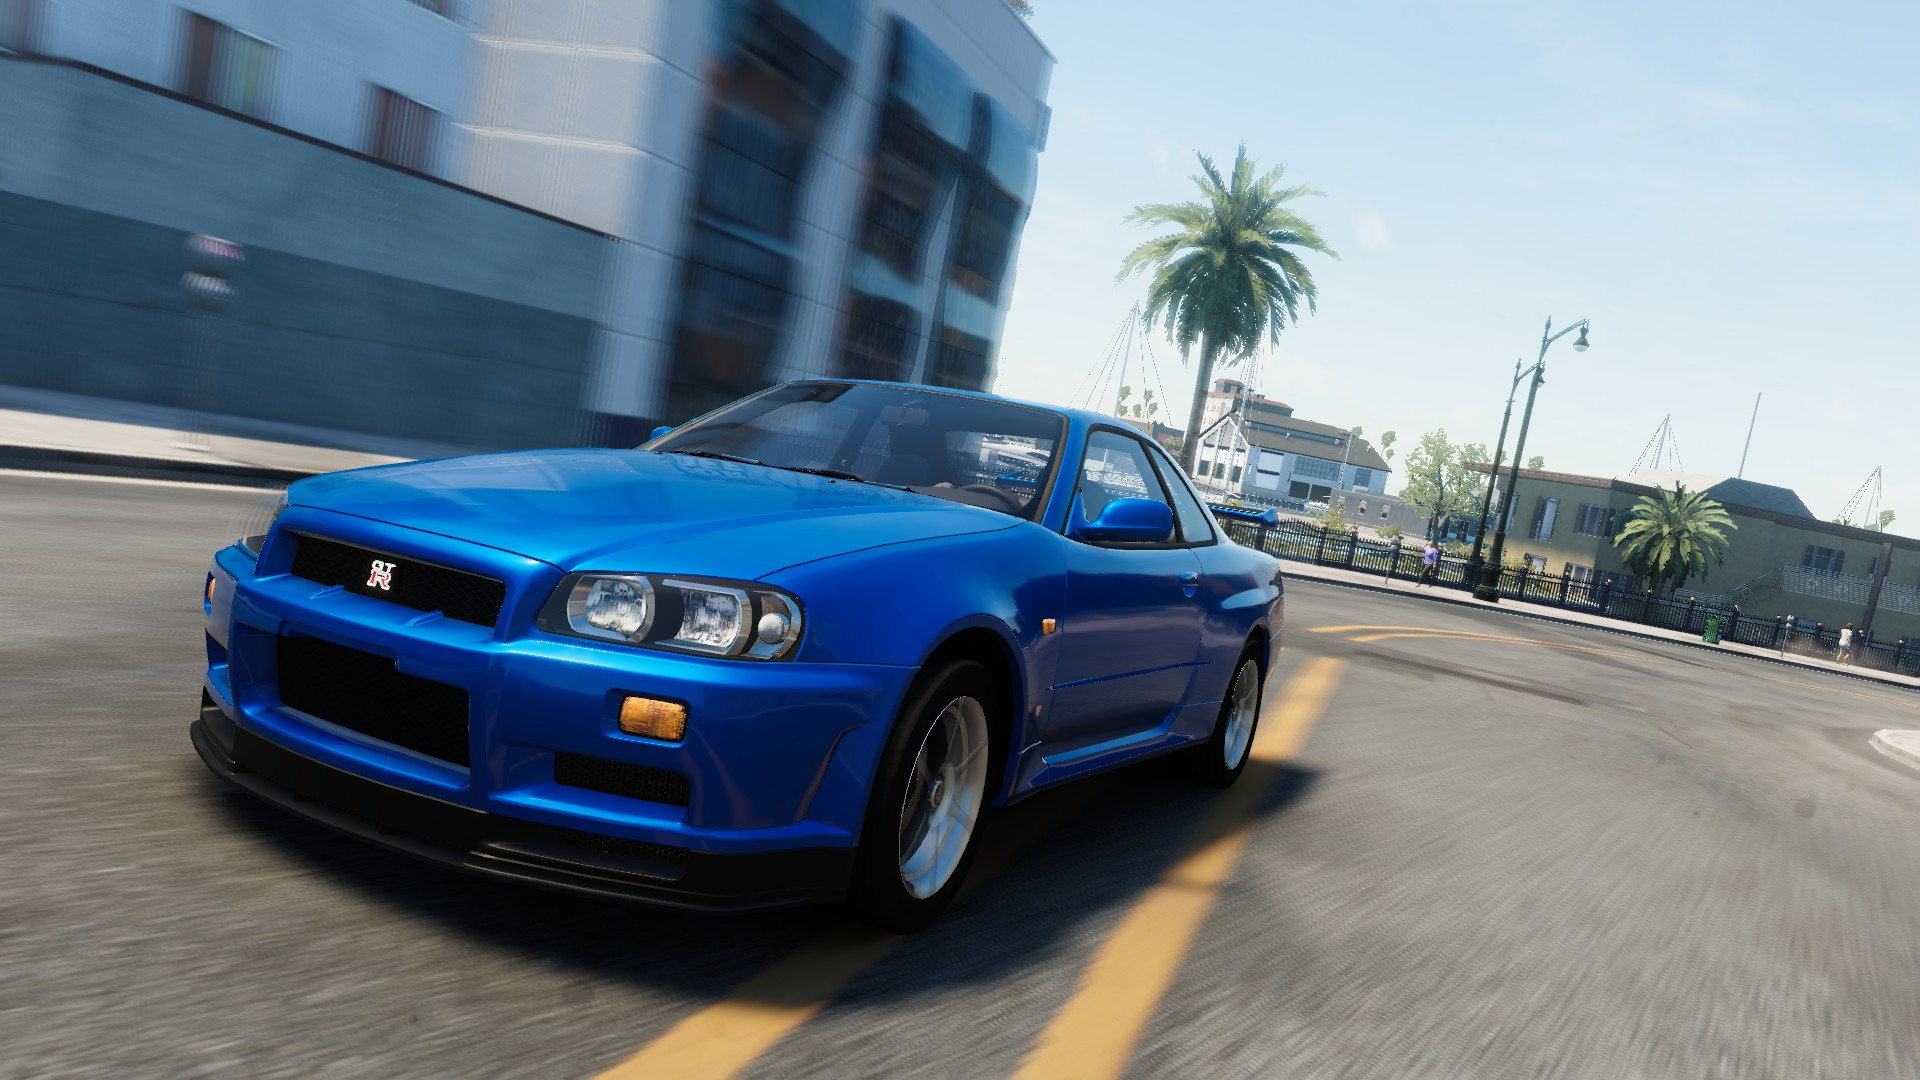 nissan skyline gt r r34 the crew wiki fandom powered by wikia. Black Bedroom Furniture Sets. Home Design Ideas